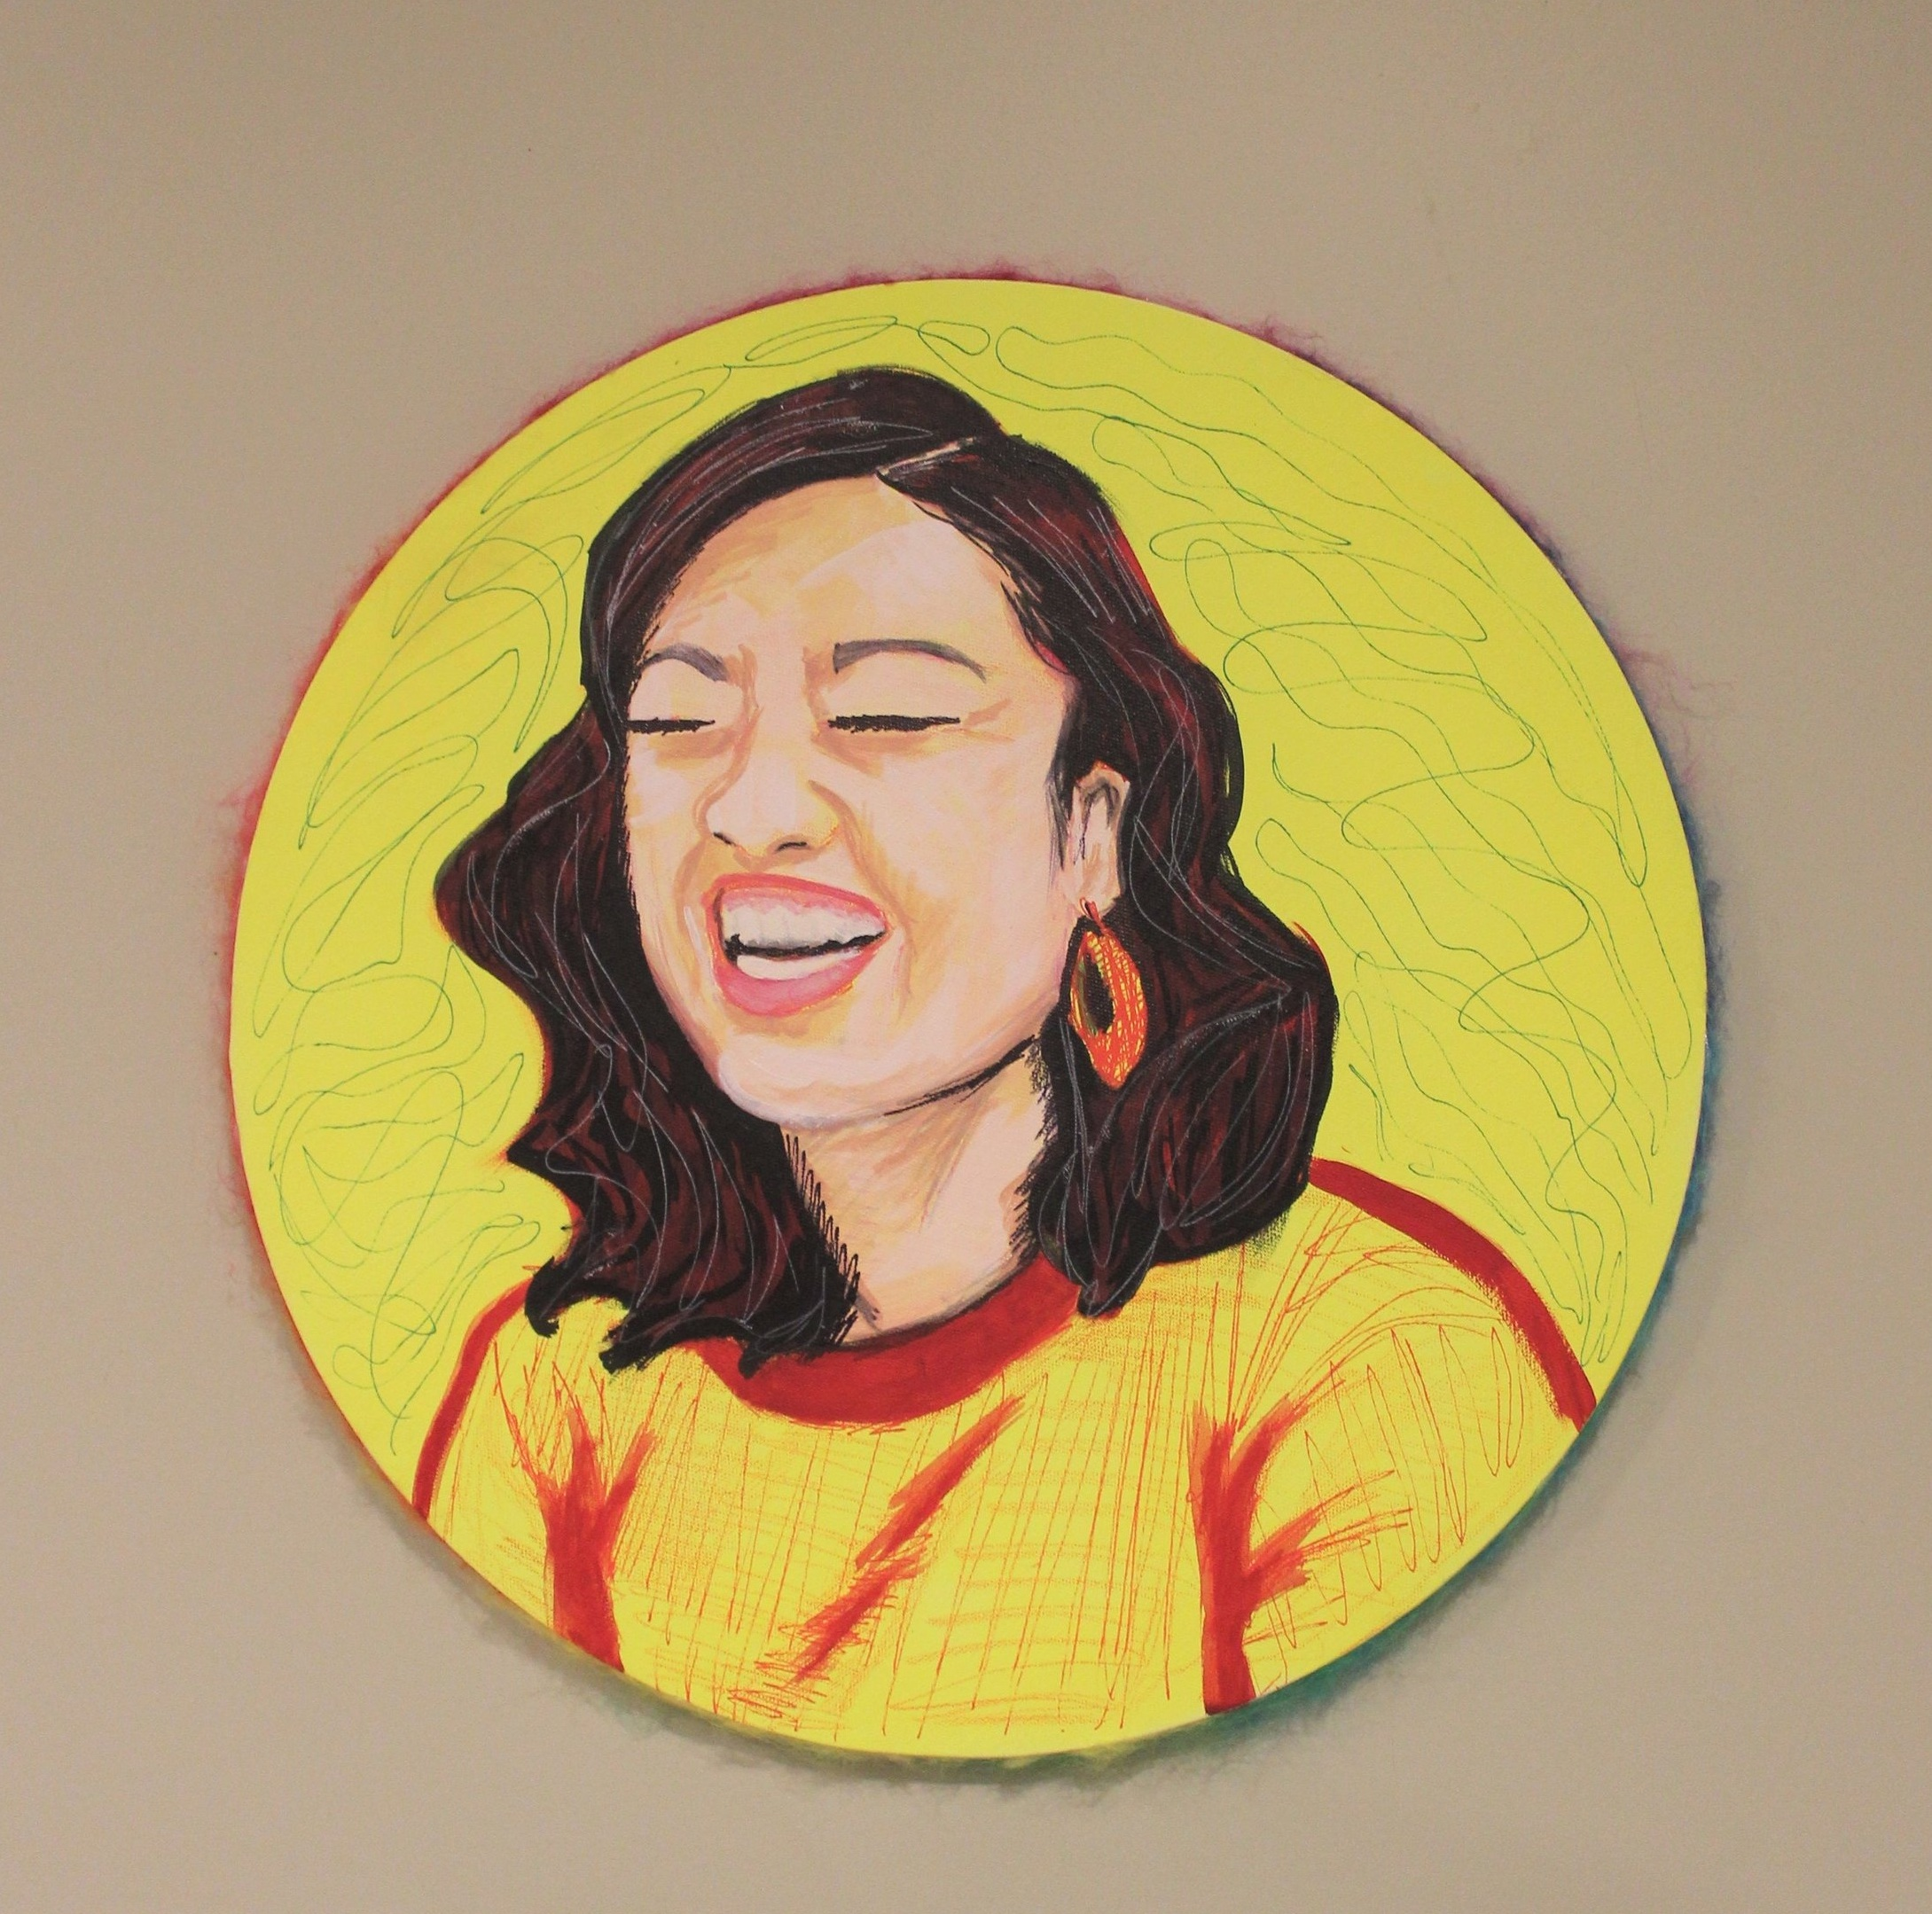 BEAMING: Ellie, 2019, acrylic, crayon and yarn on canvas, 24in round